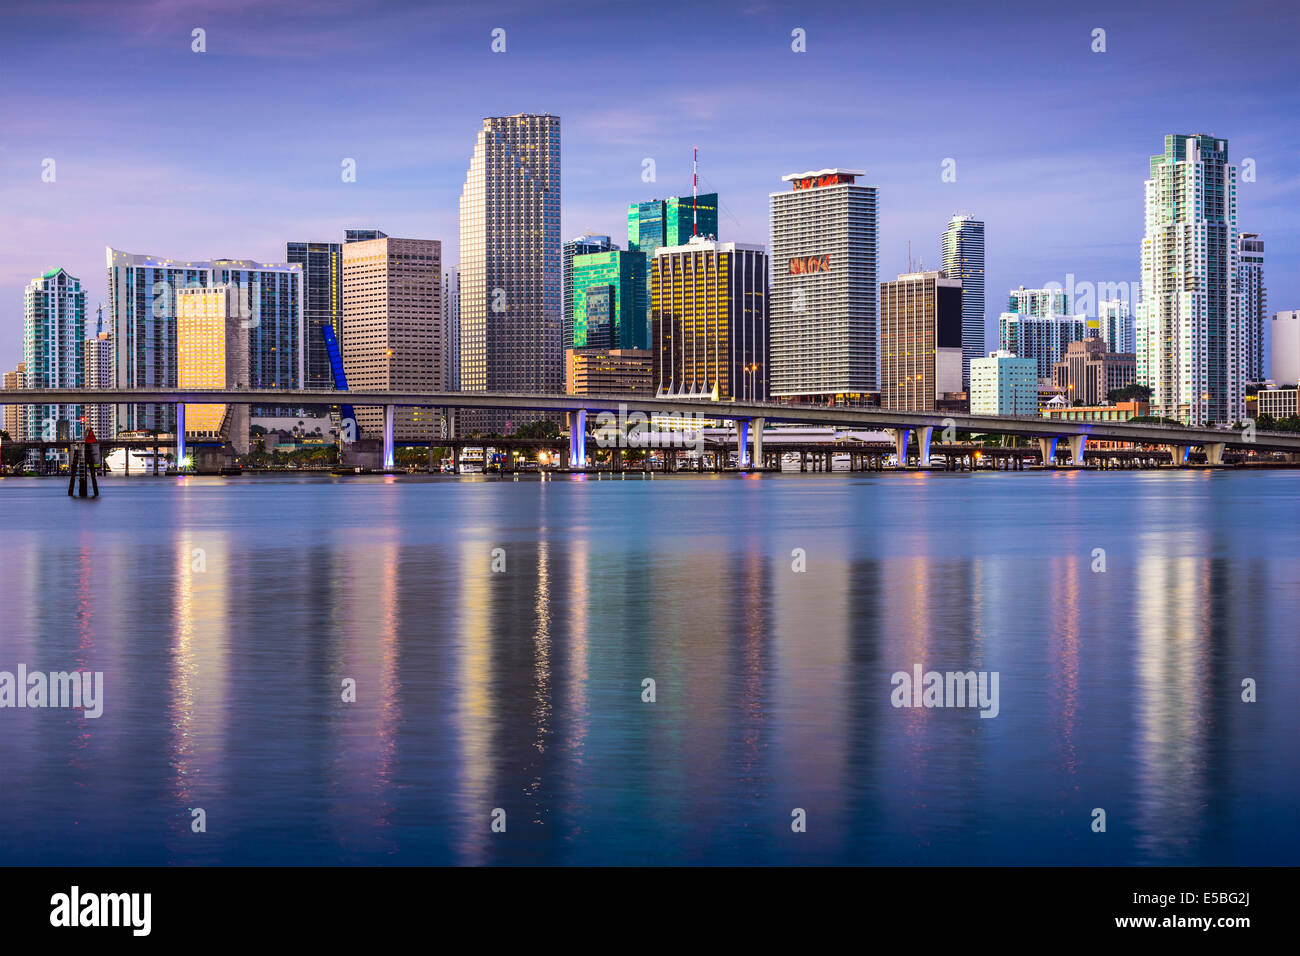 Miami, Florida, USA downtown skyline. - Stock Image